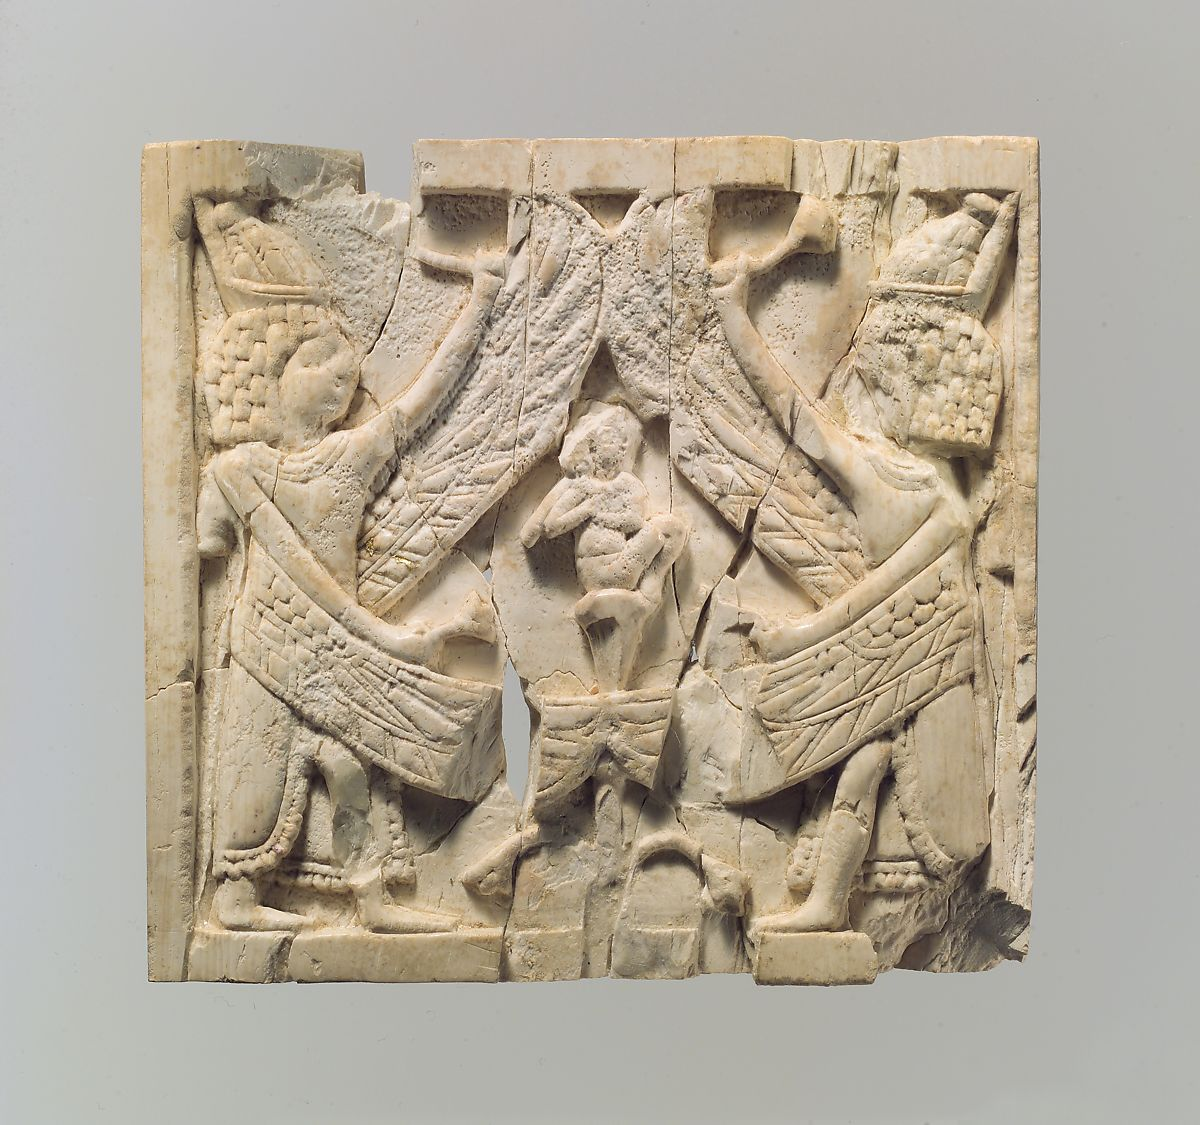 Furniture Plaque Carved In Relief Showing Two Winged Male Figures